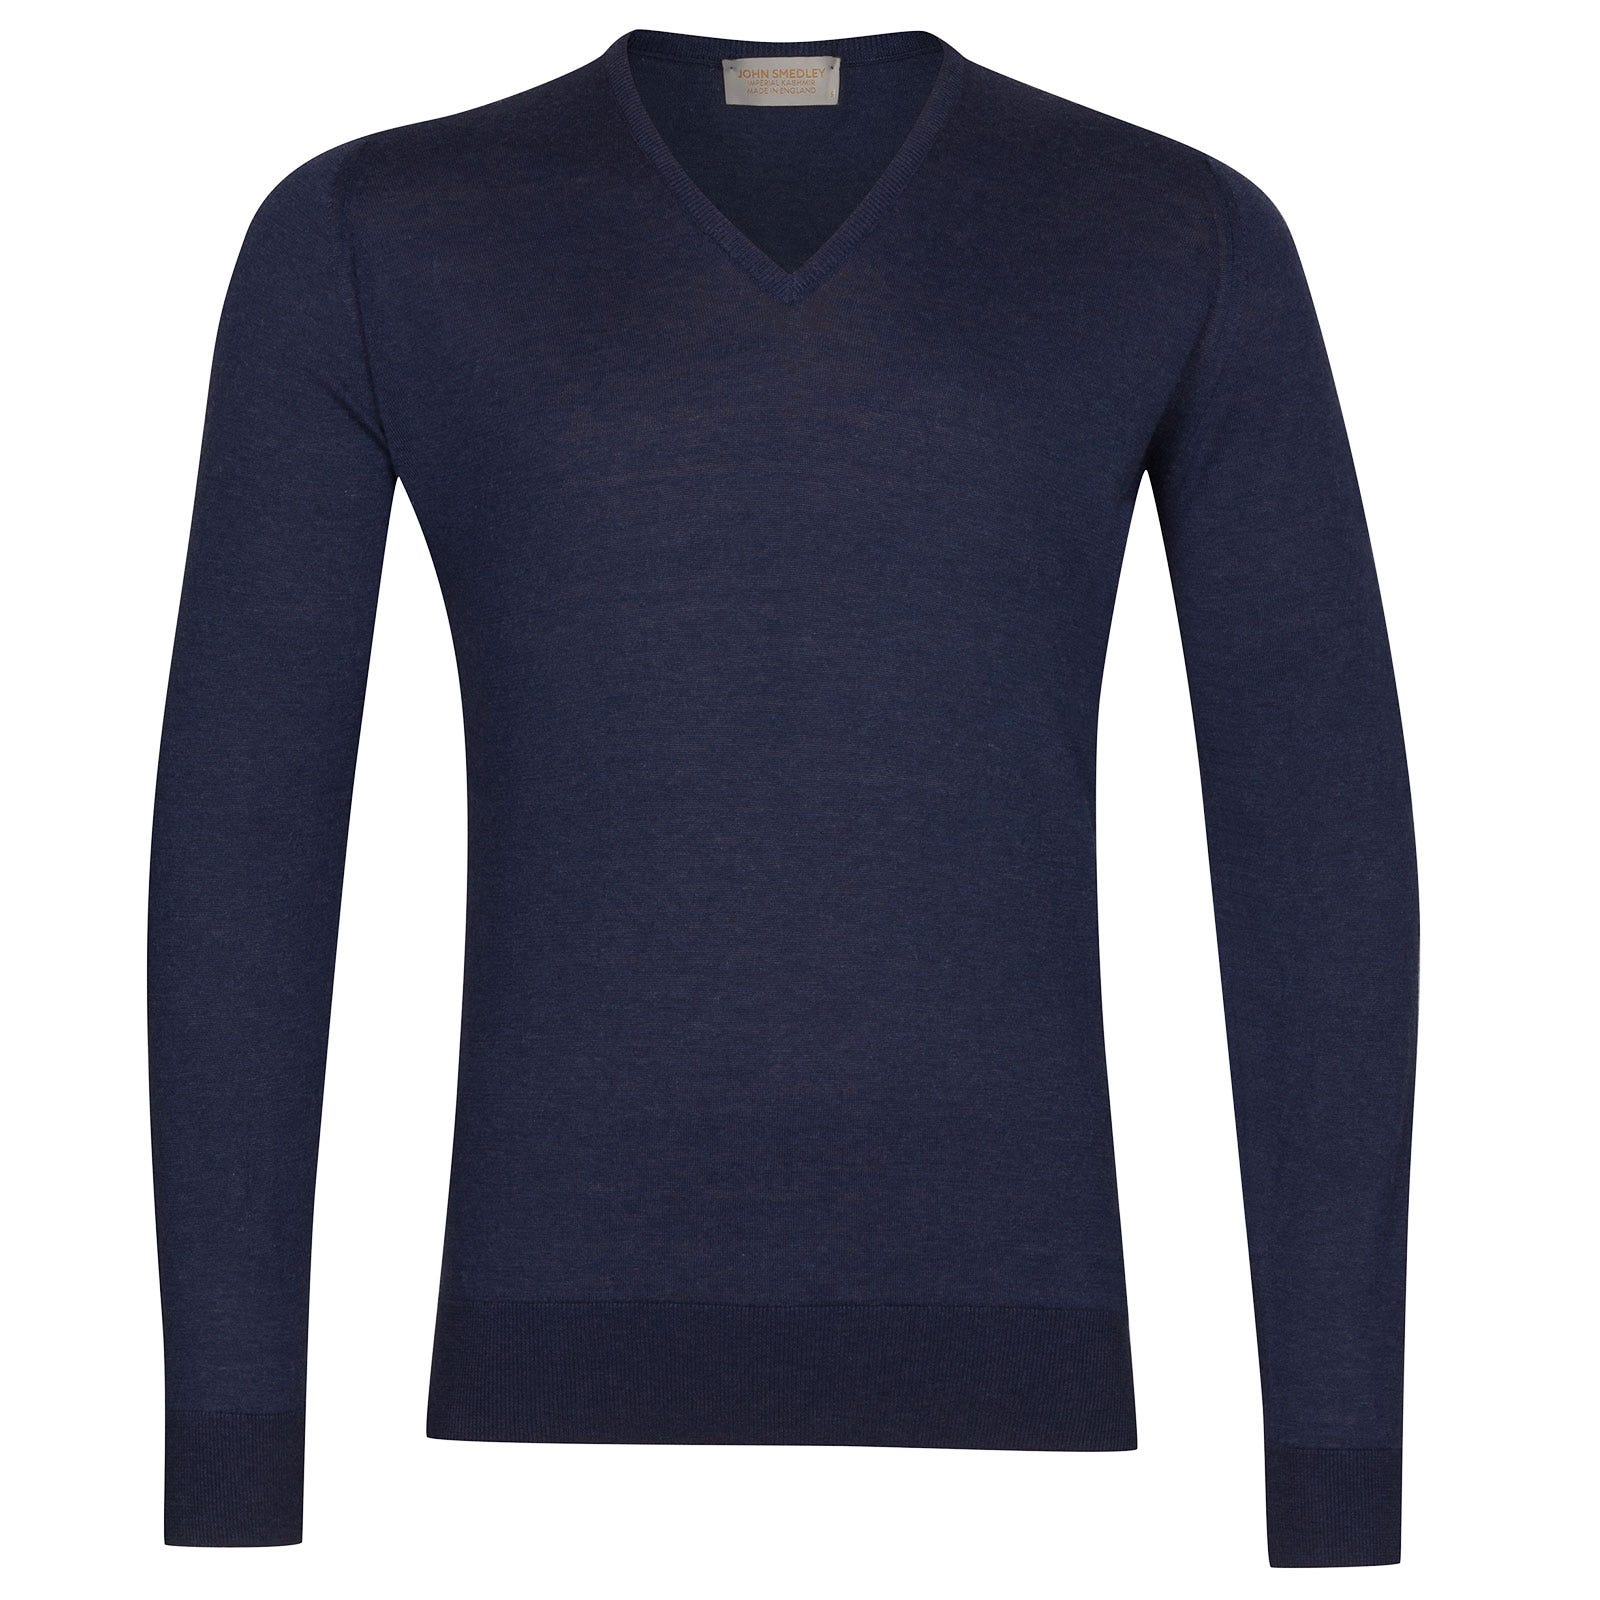 John Smedley Dayton Sea Island Cotton and Cashmere Pullover in